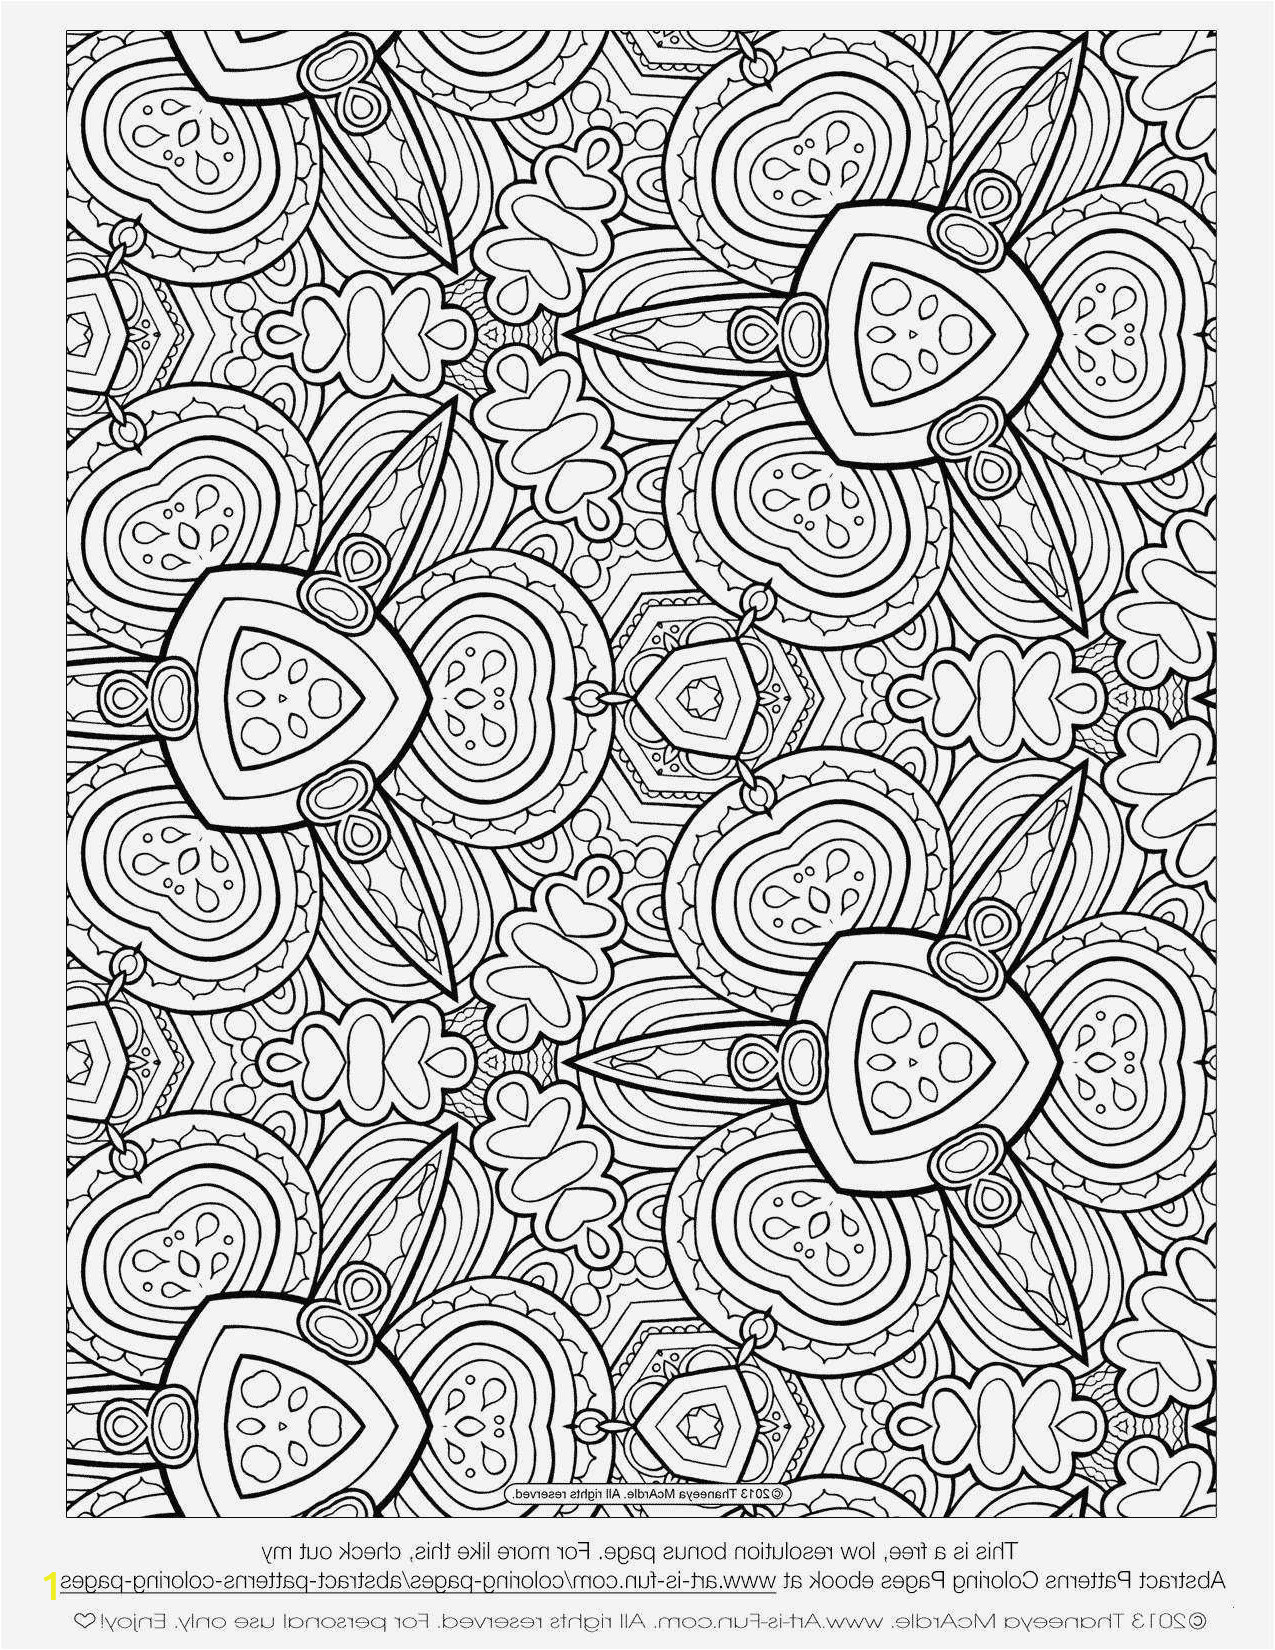 high resolution coloring book images cool images dc coloring pages inspirational superhero 0 0d throughout goosebumps of high resolution coloring book images